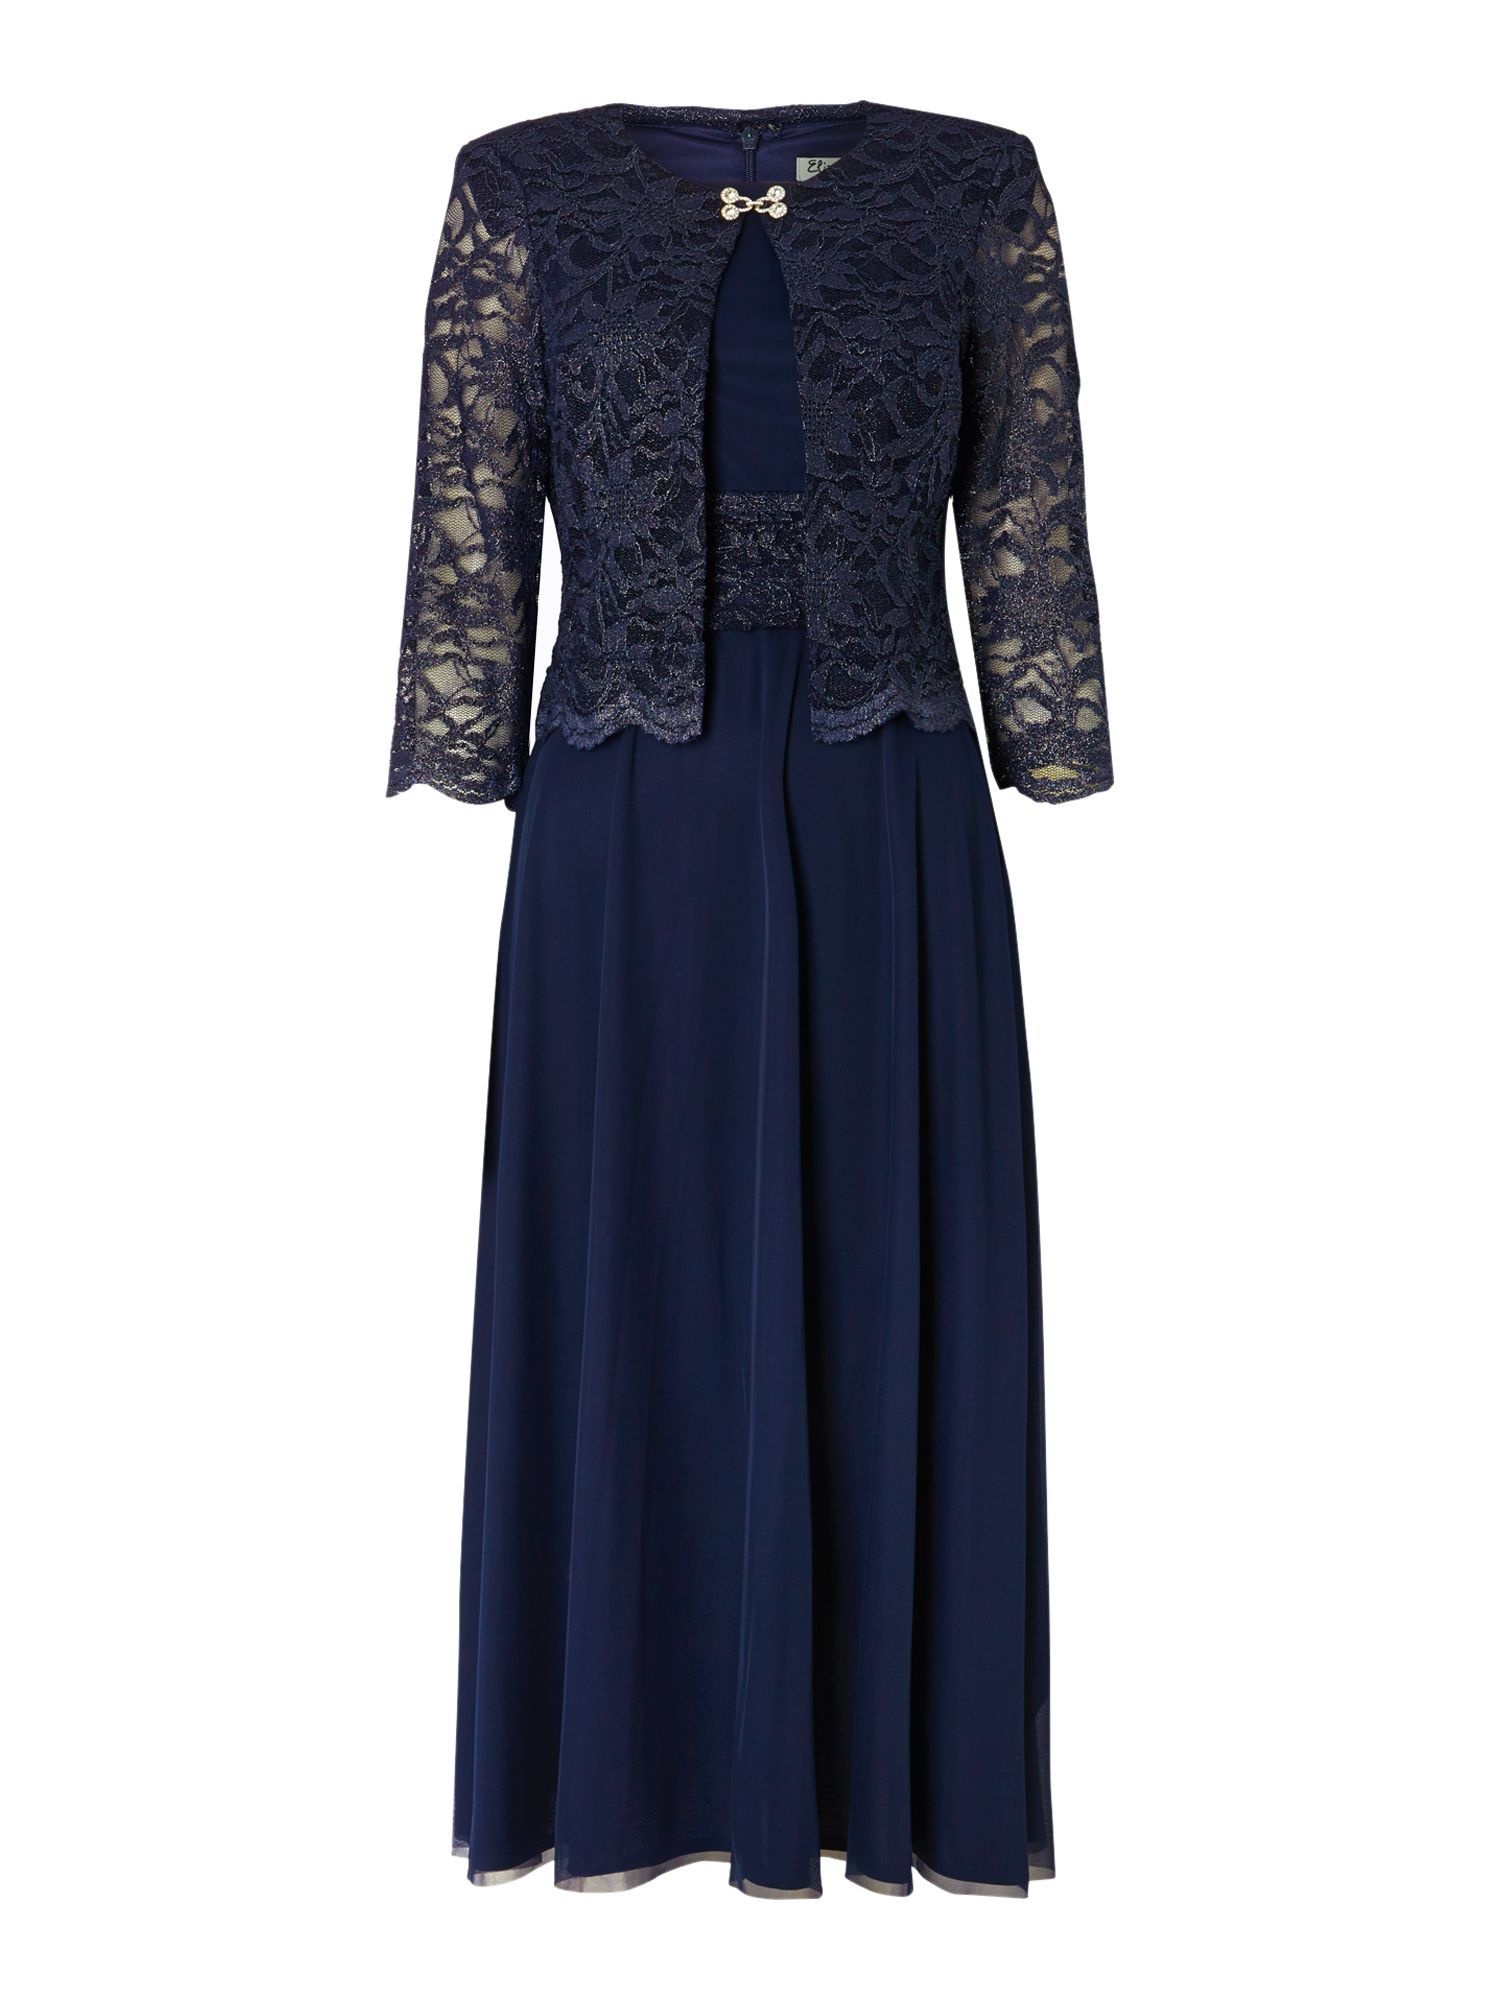 Eliza J Mesh And Lace Dress Jacket Navy